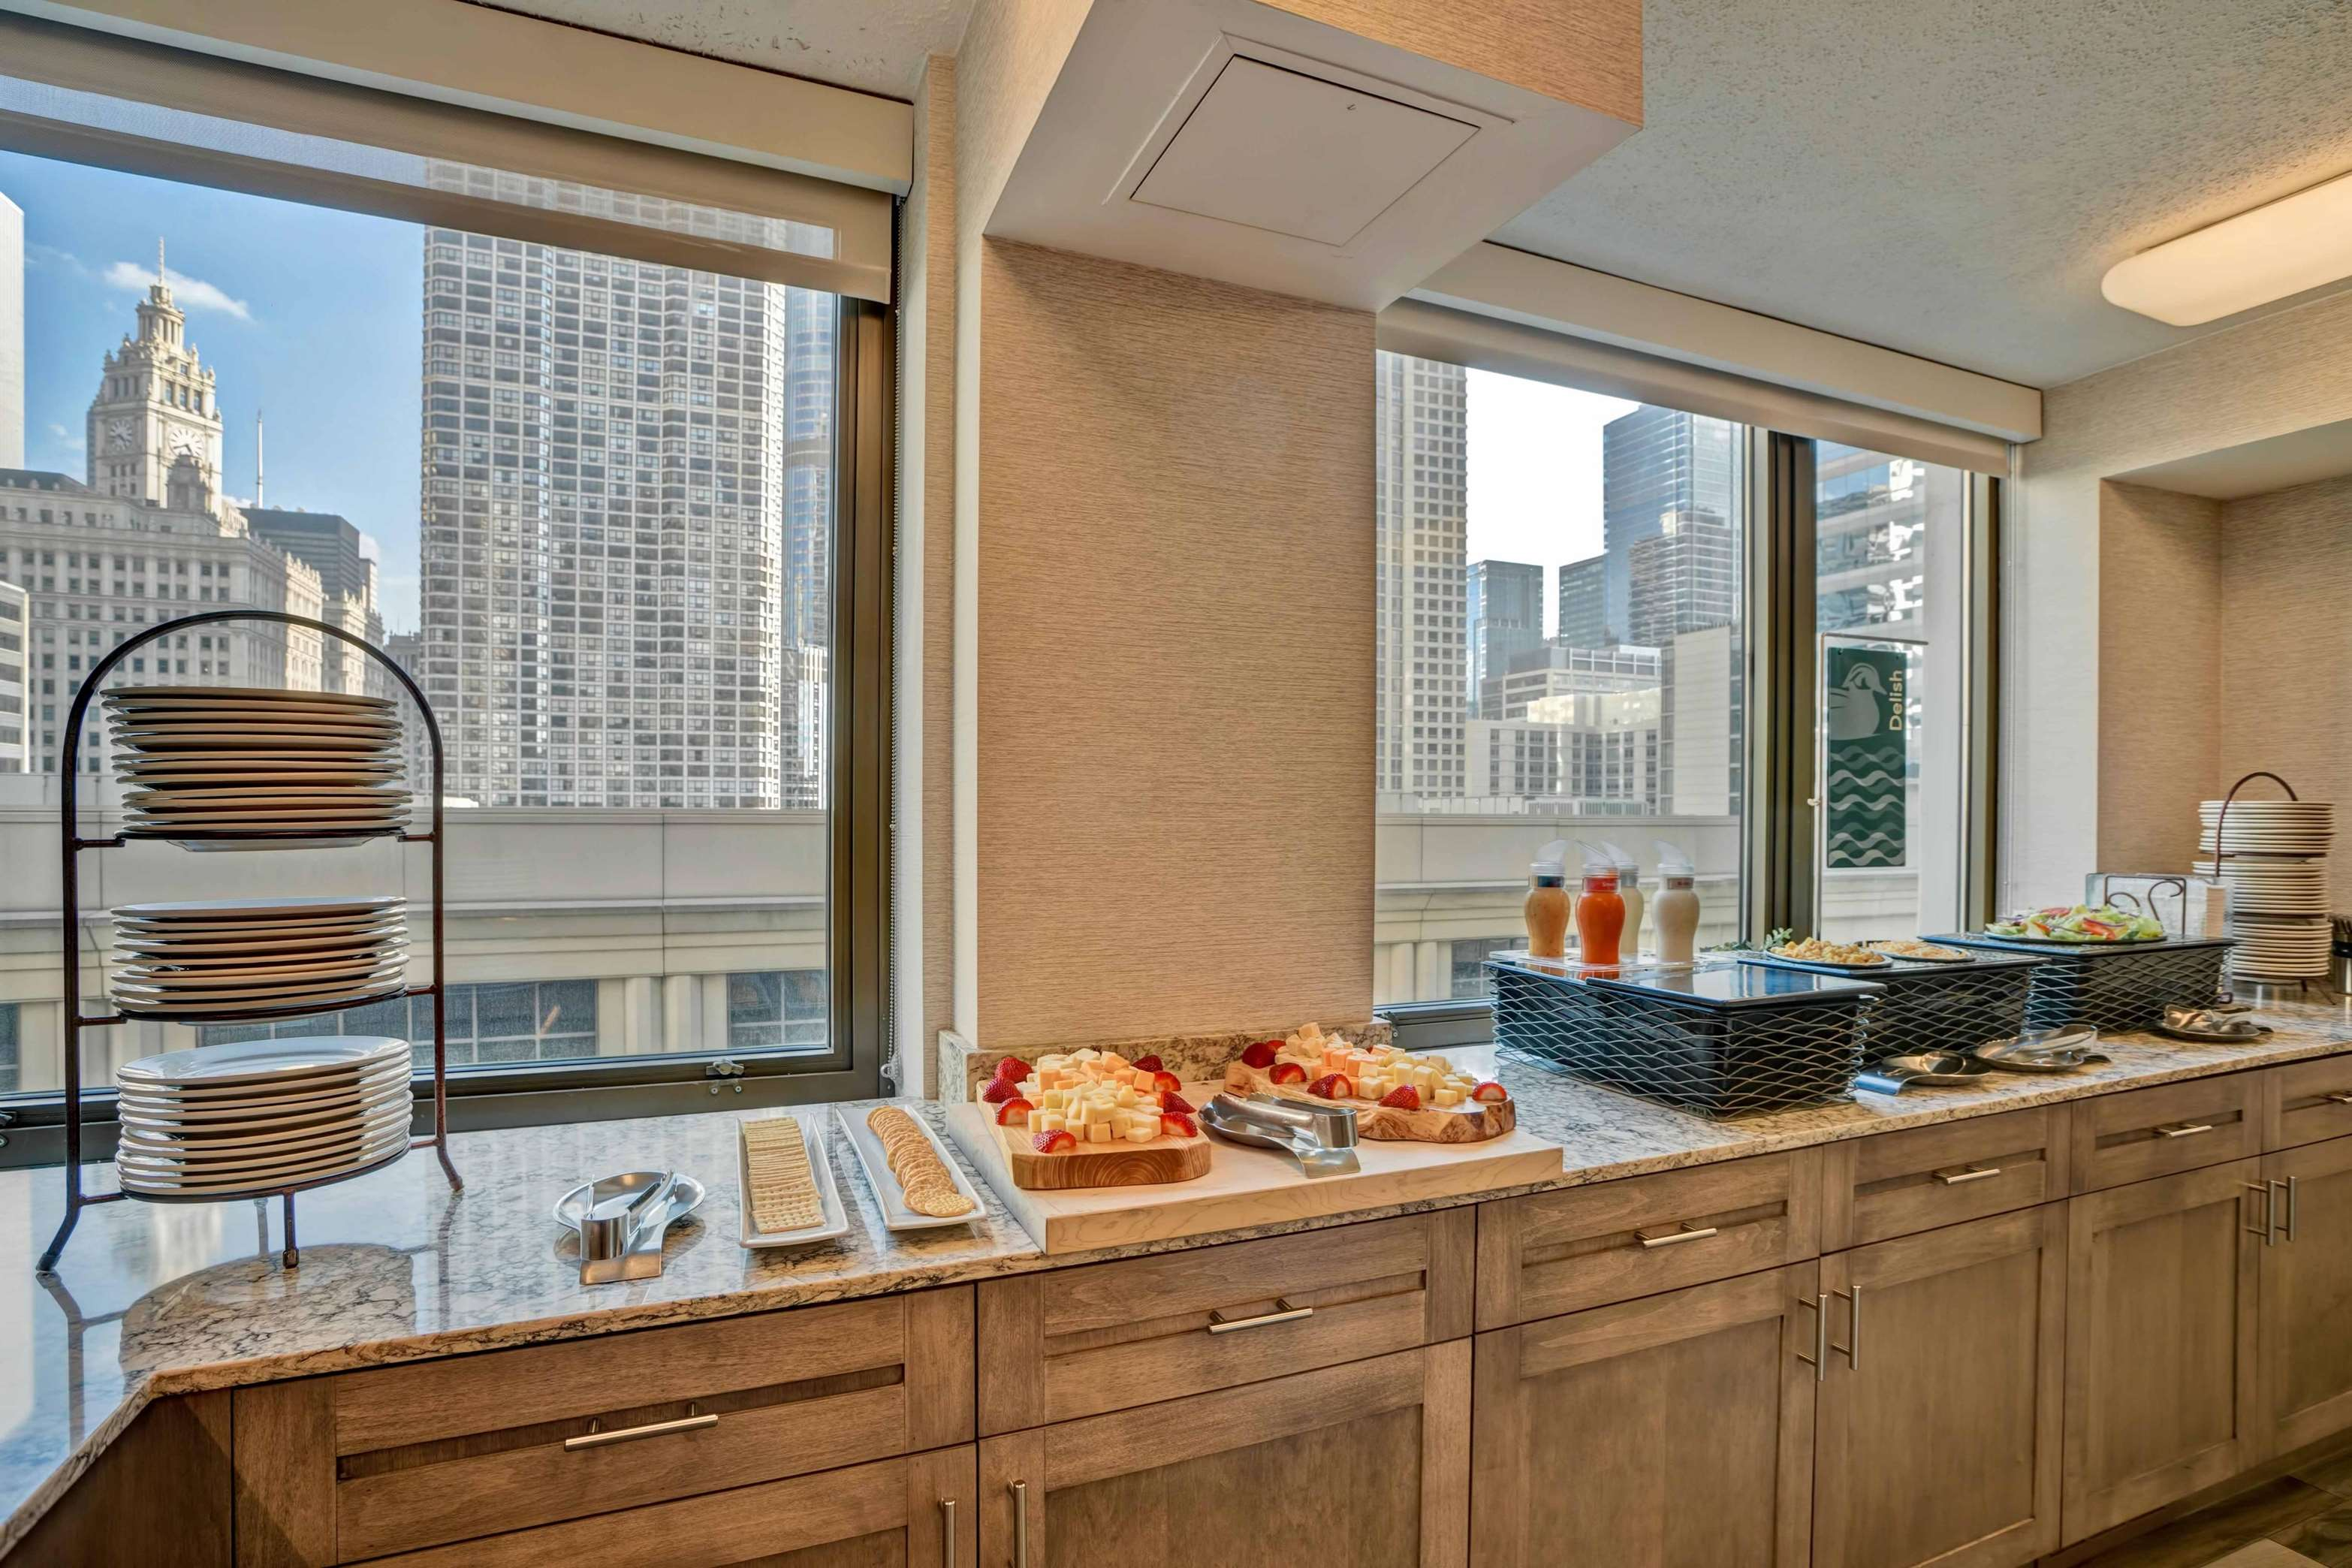 Homewood Suites by Hilton Chicago-Downtown image 48